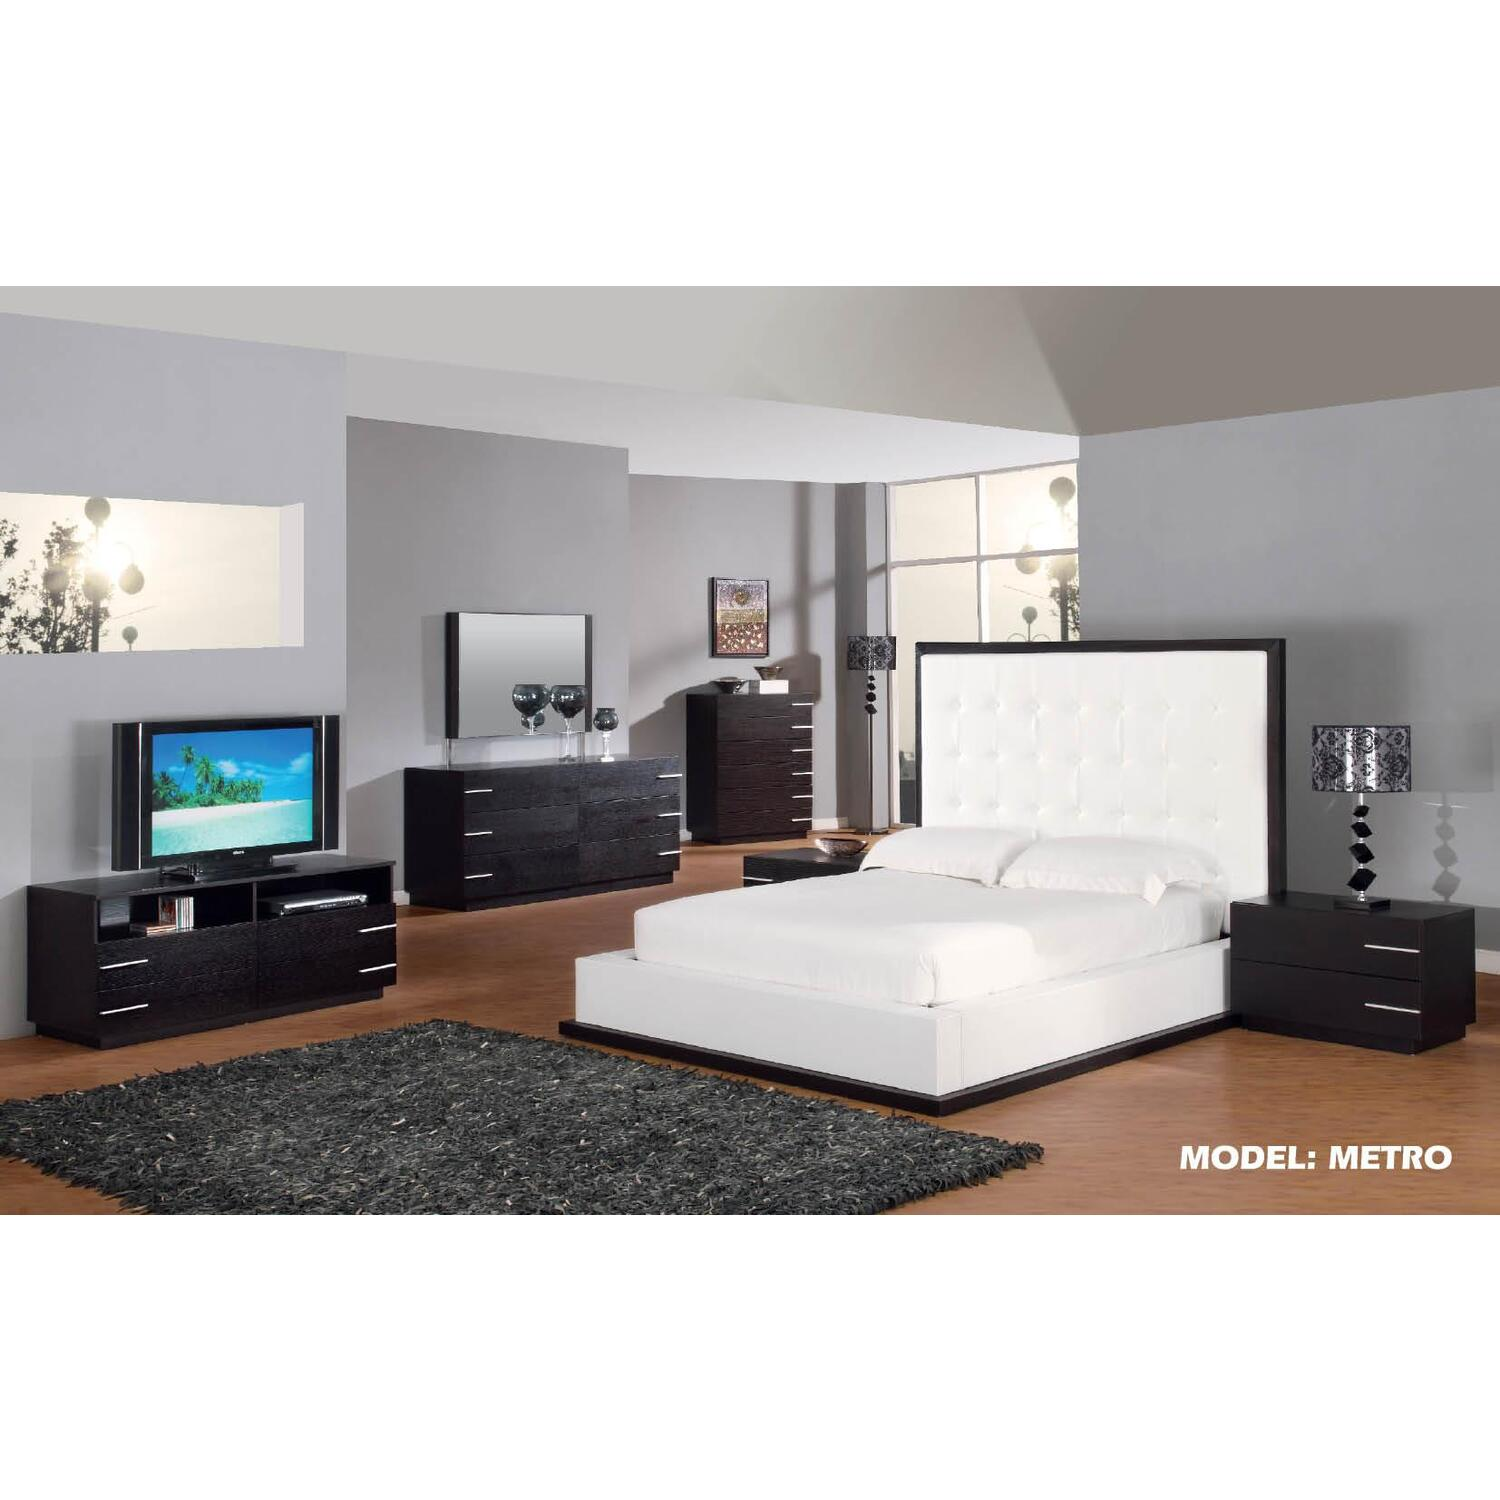 Metro Bedroom Set 1654 x 1024